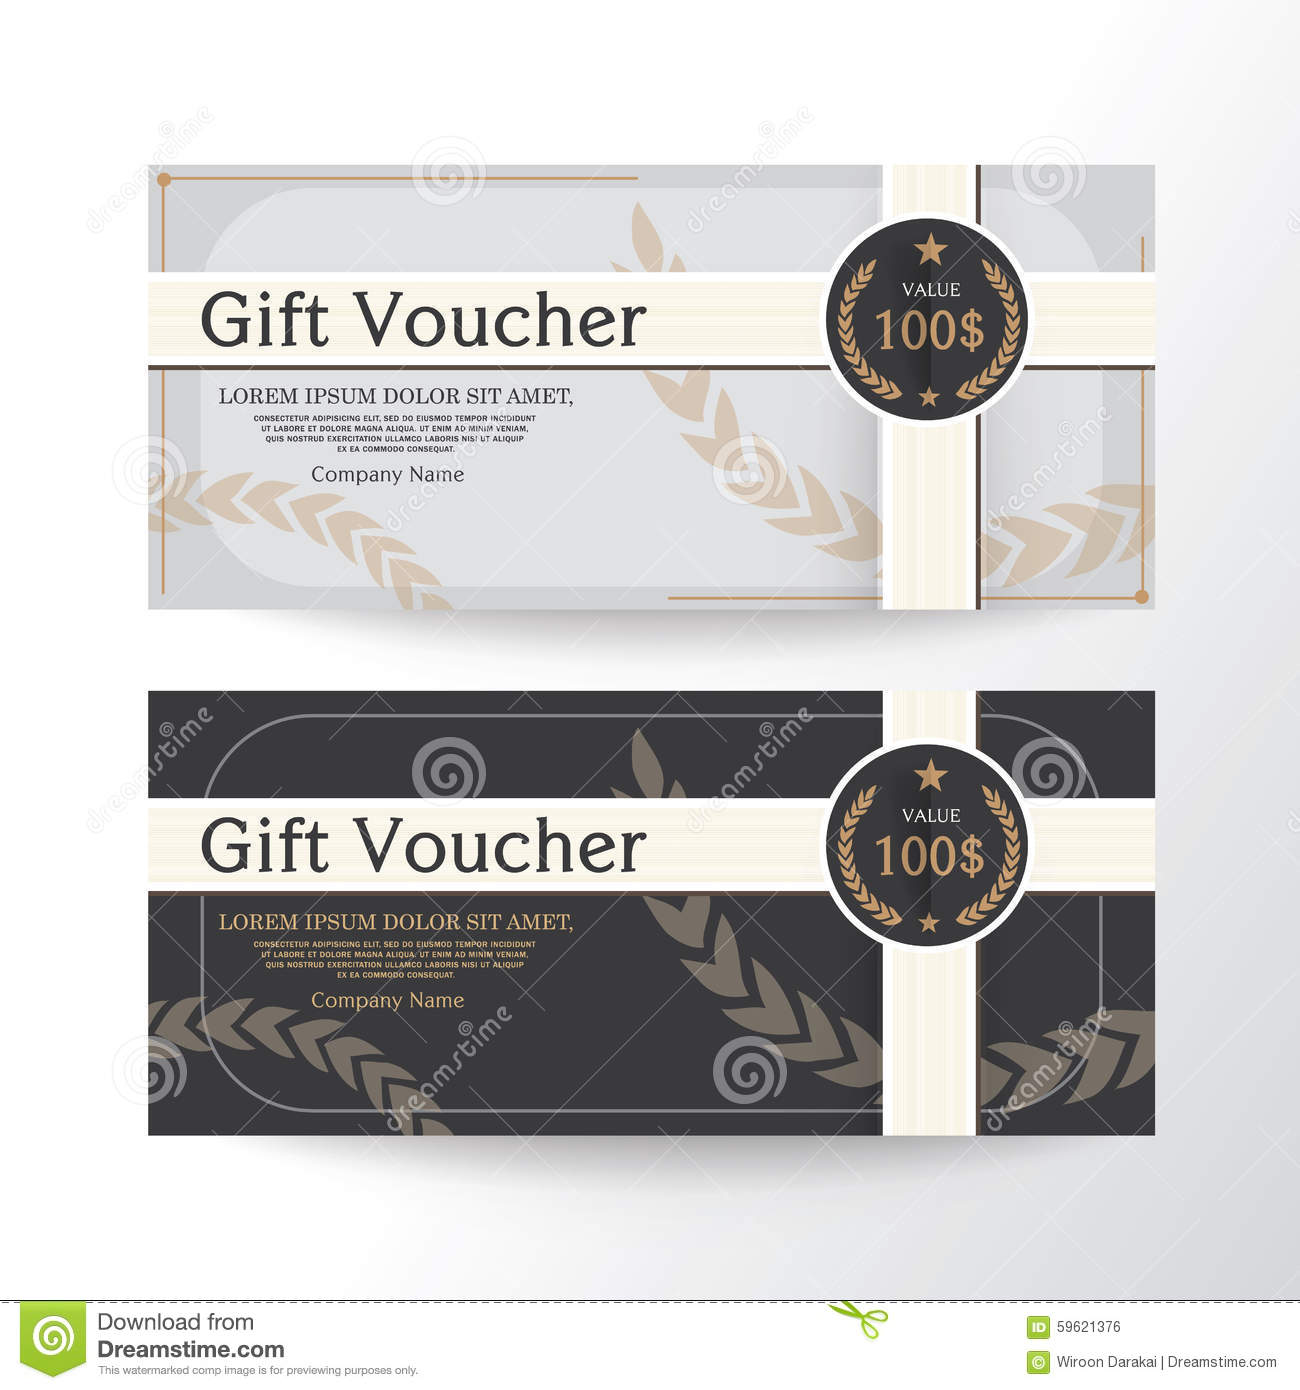 gift voucher design vector template layout for business card gift